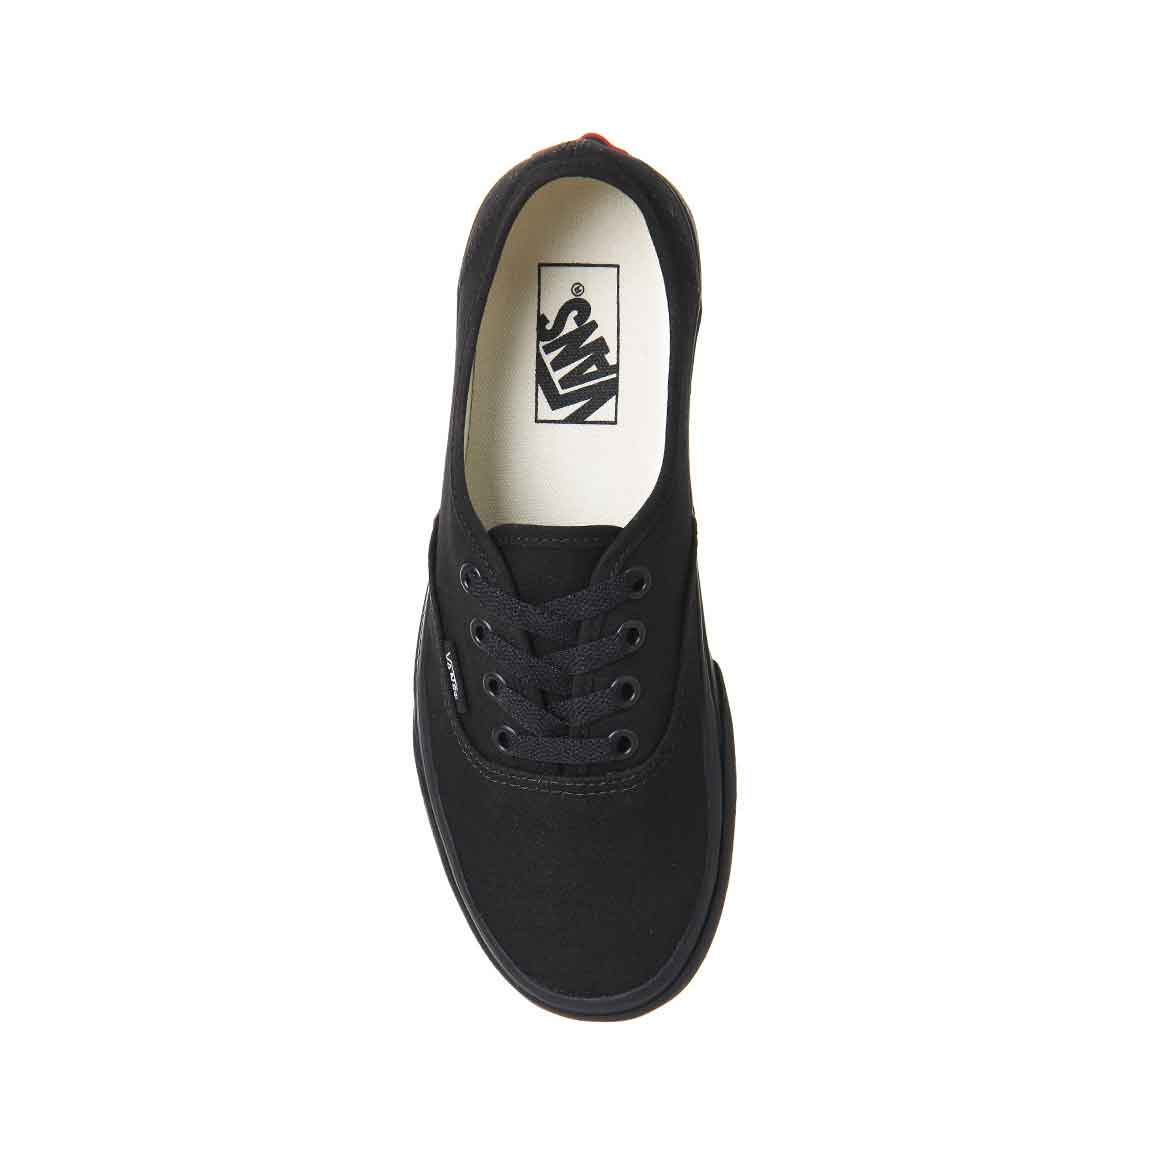 e3451db06b22 Custom Vans Shoes Black Authentic With Your Year - Wedding Converse